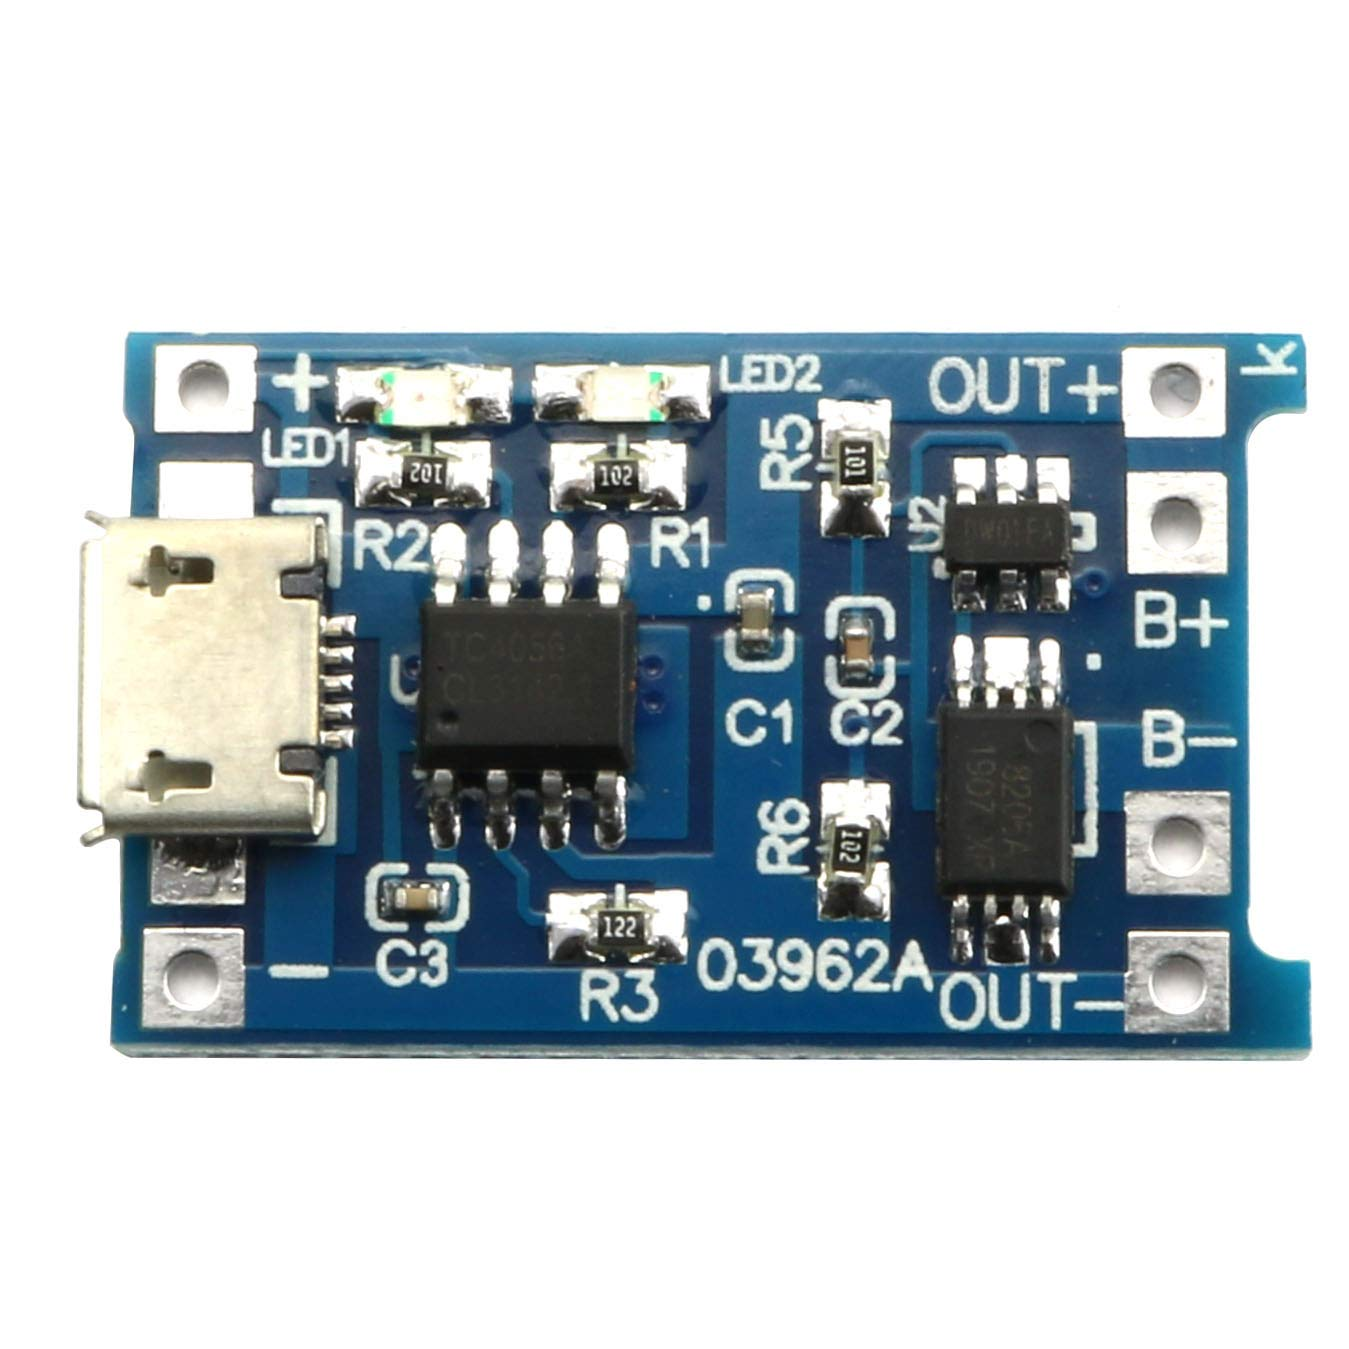 Magic/&shell 1PC 0.9V-5V to 5V 600mA USB Boost Step-up DC-DC Converter and 1PC 1A 18650 Lithium Battery Charging Board TP4056 with Protection Charger Module